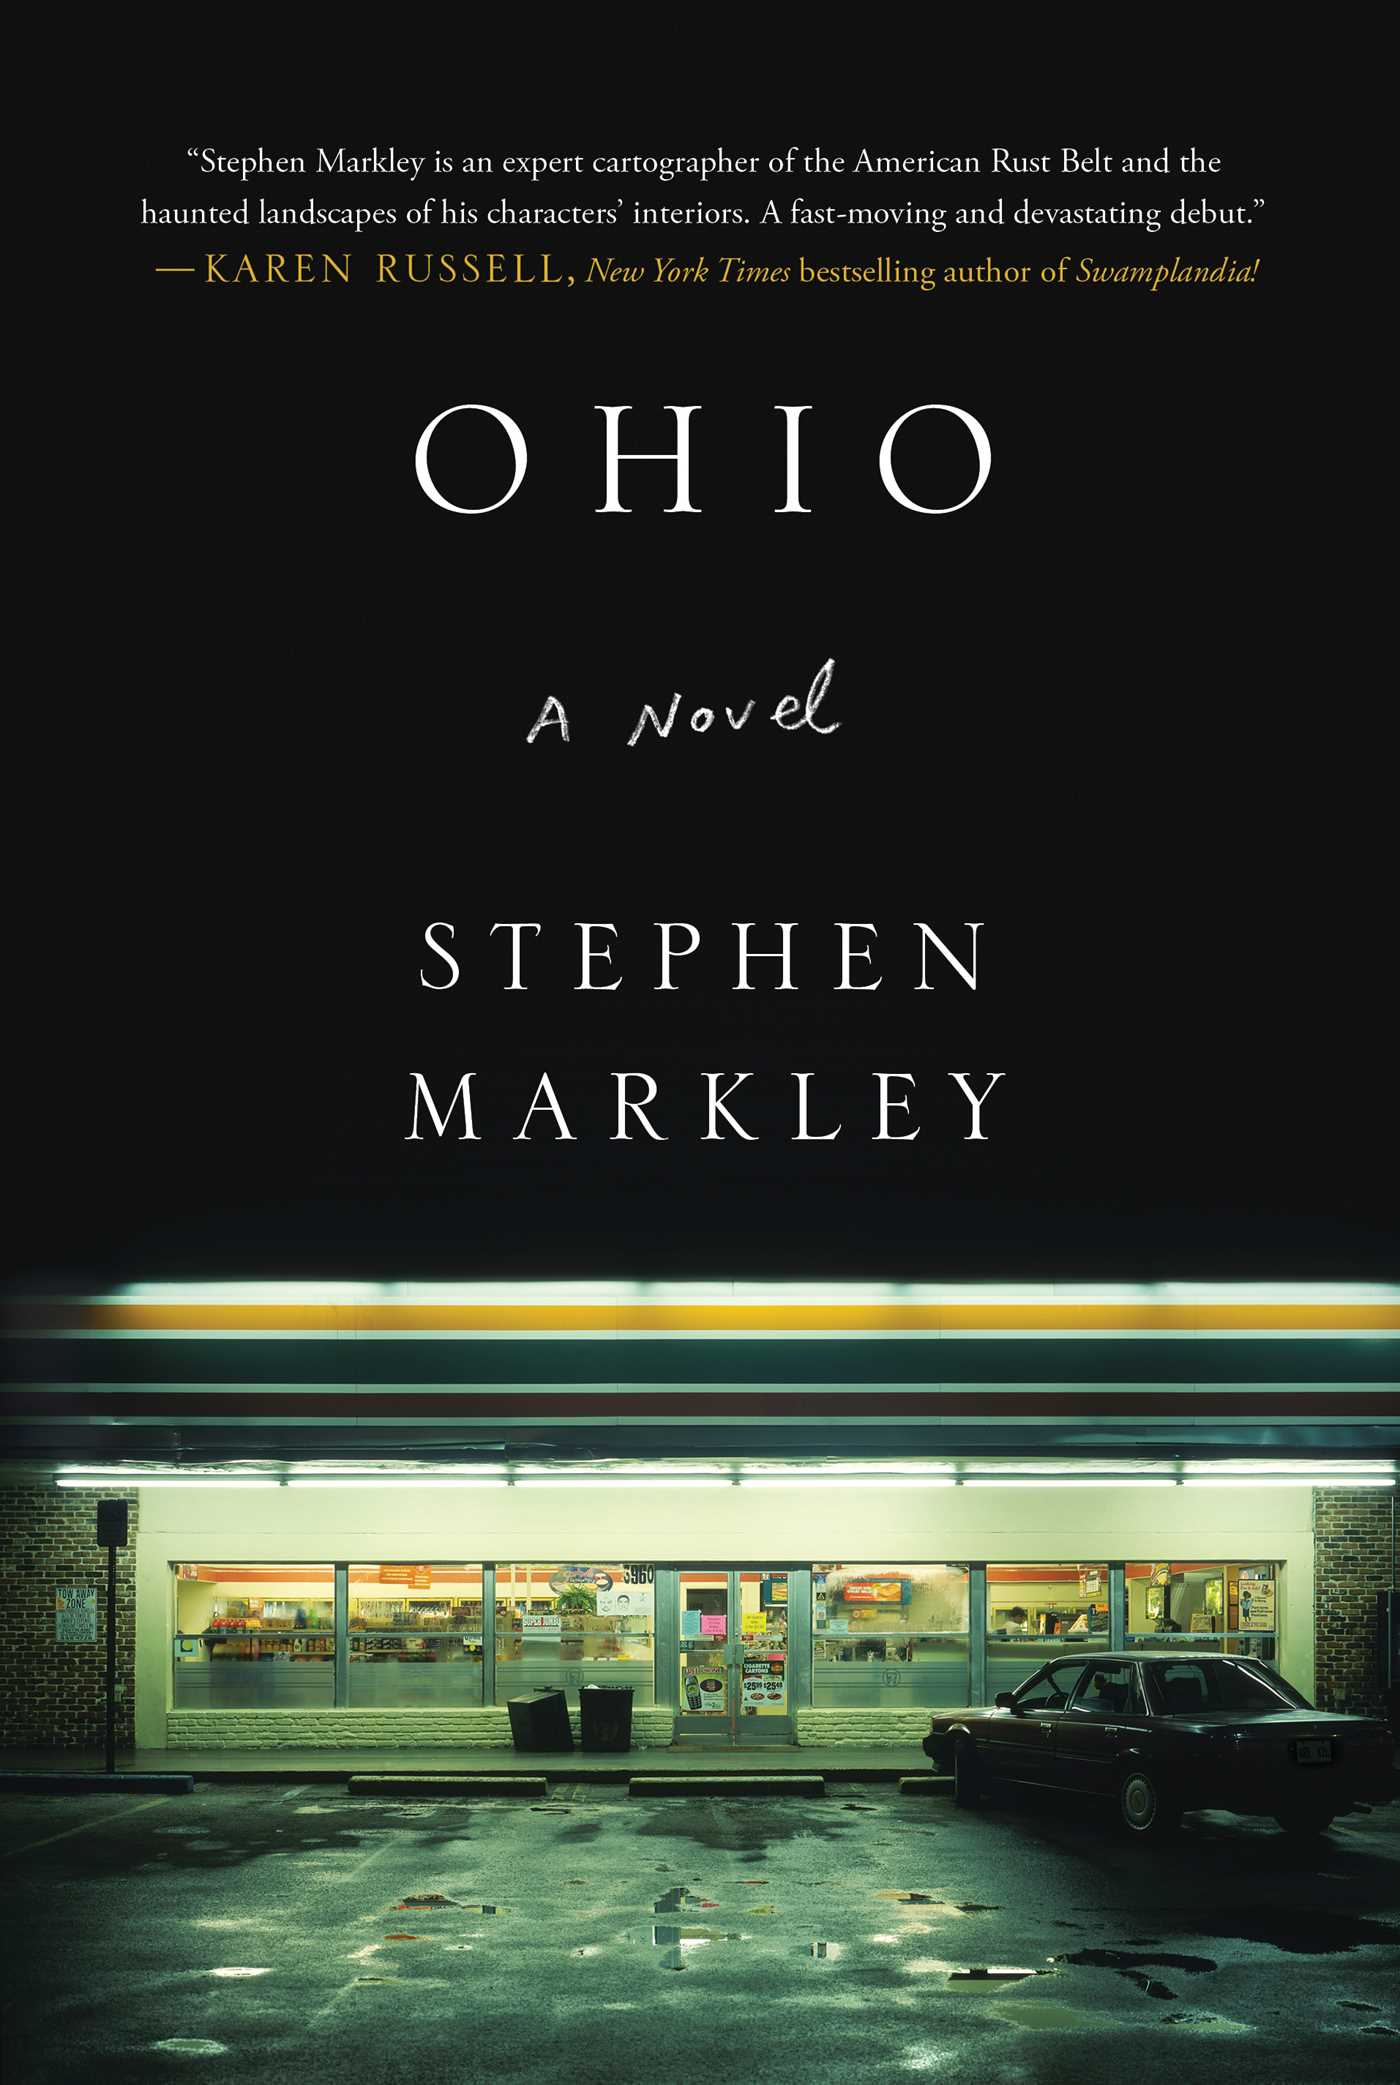 The cover of the book Ohio